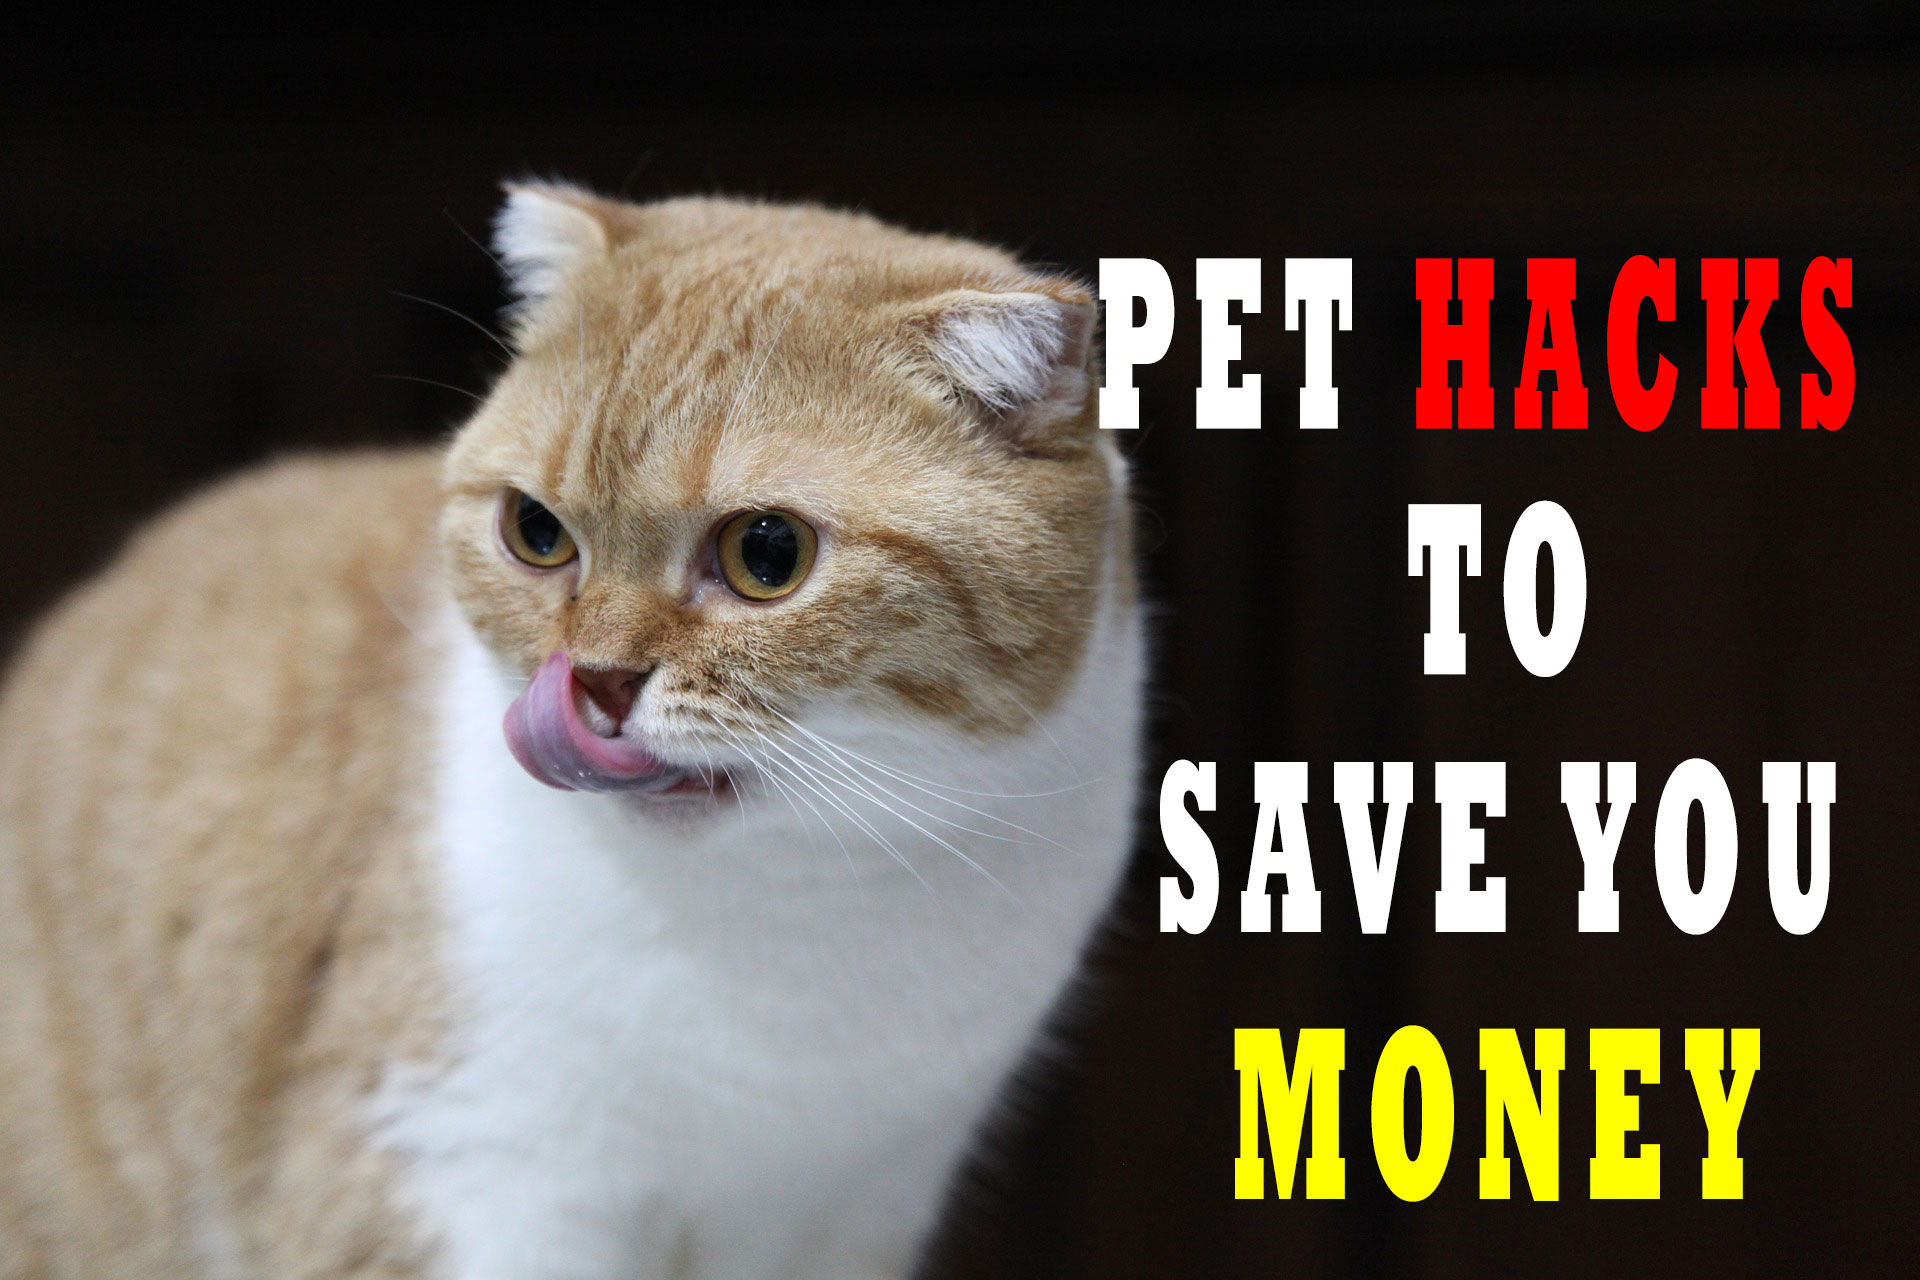 Pet Hacks To Save you Money